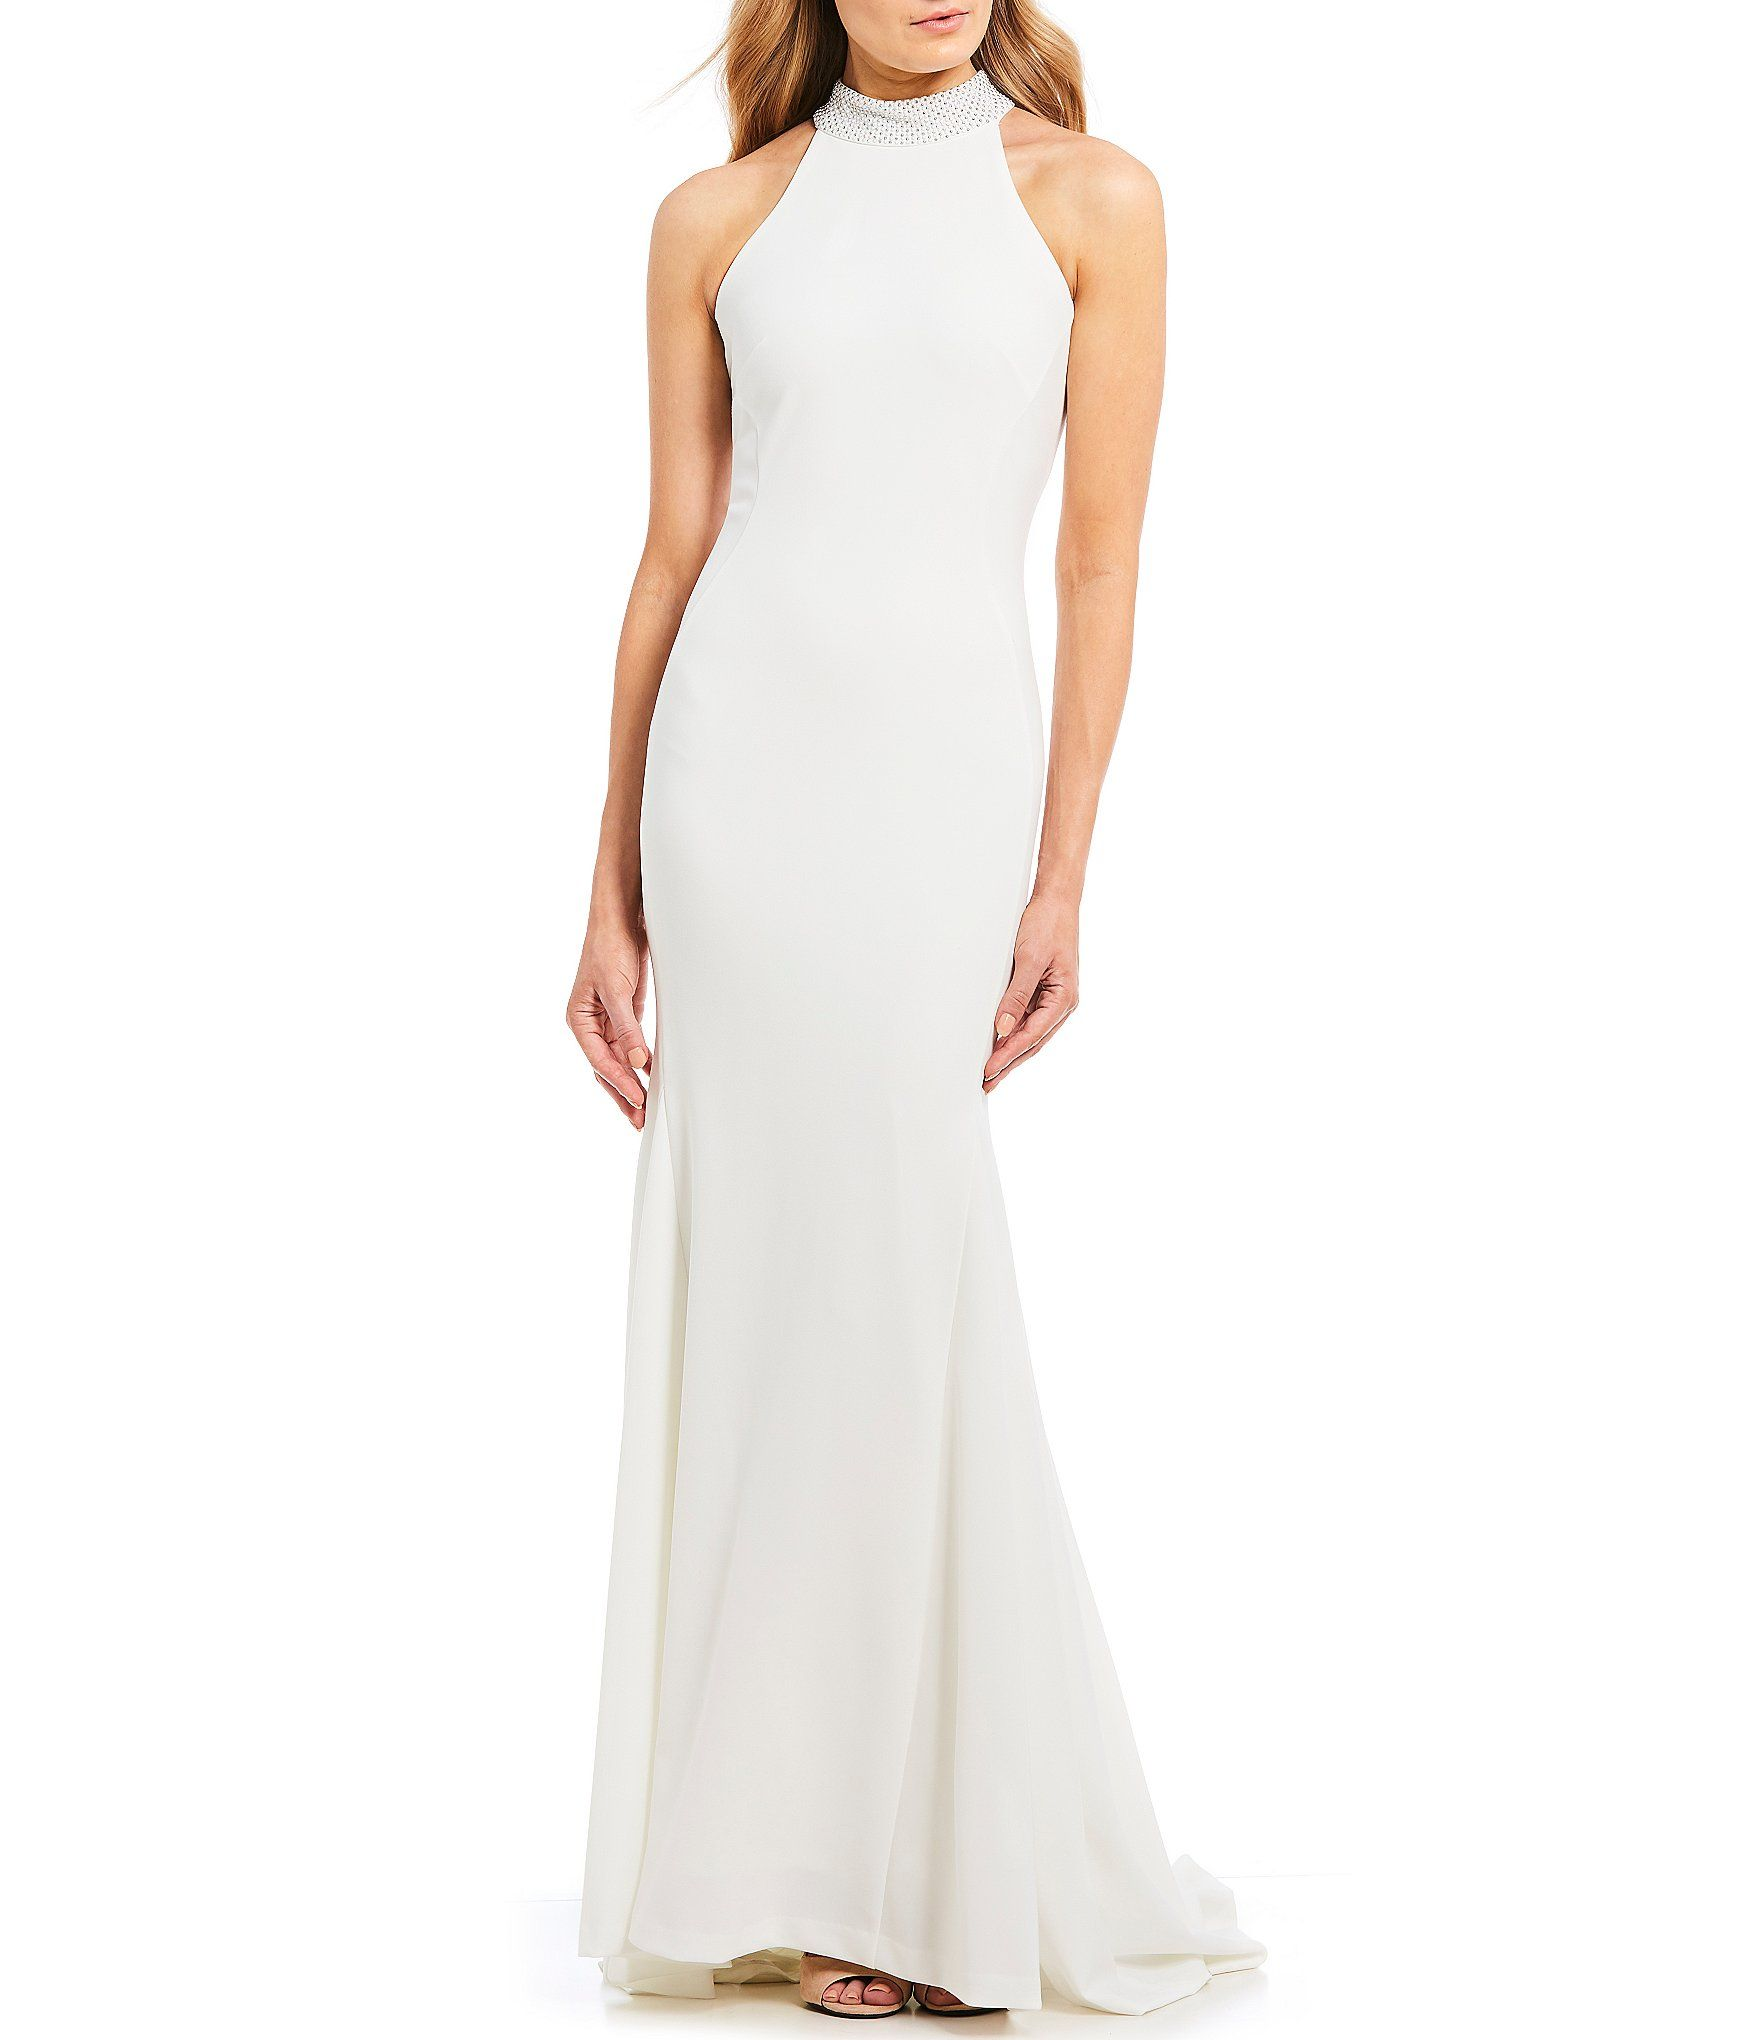 Embellished Mock Neck Mermaid Gown Glamorous Evening Gowns